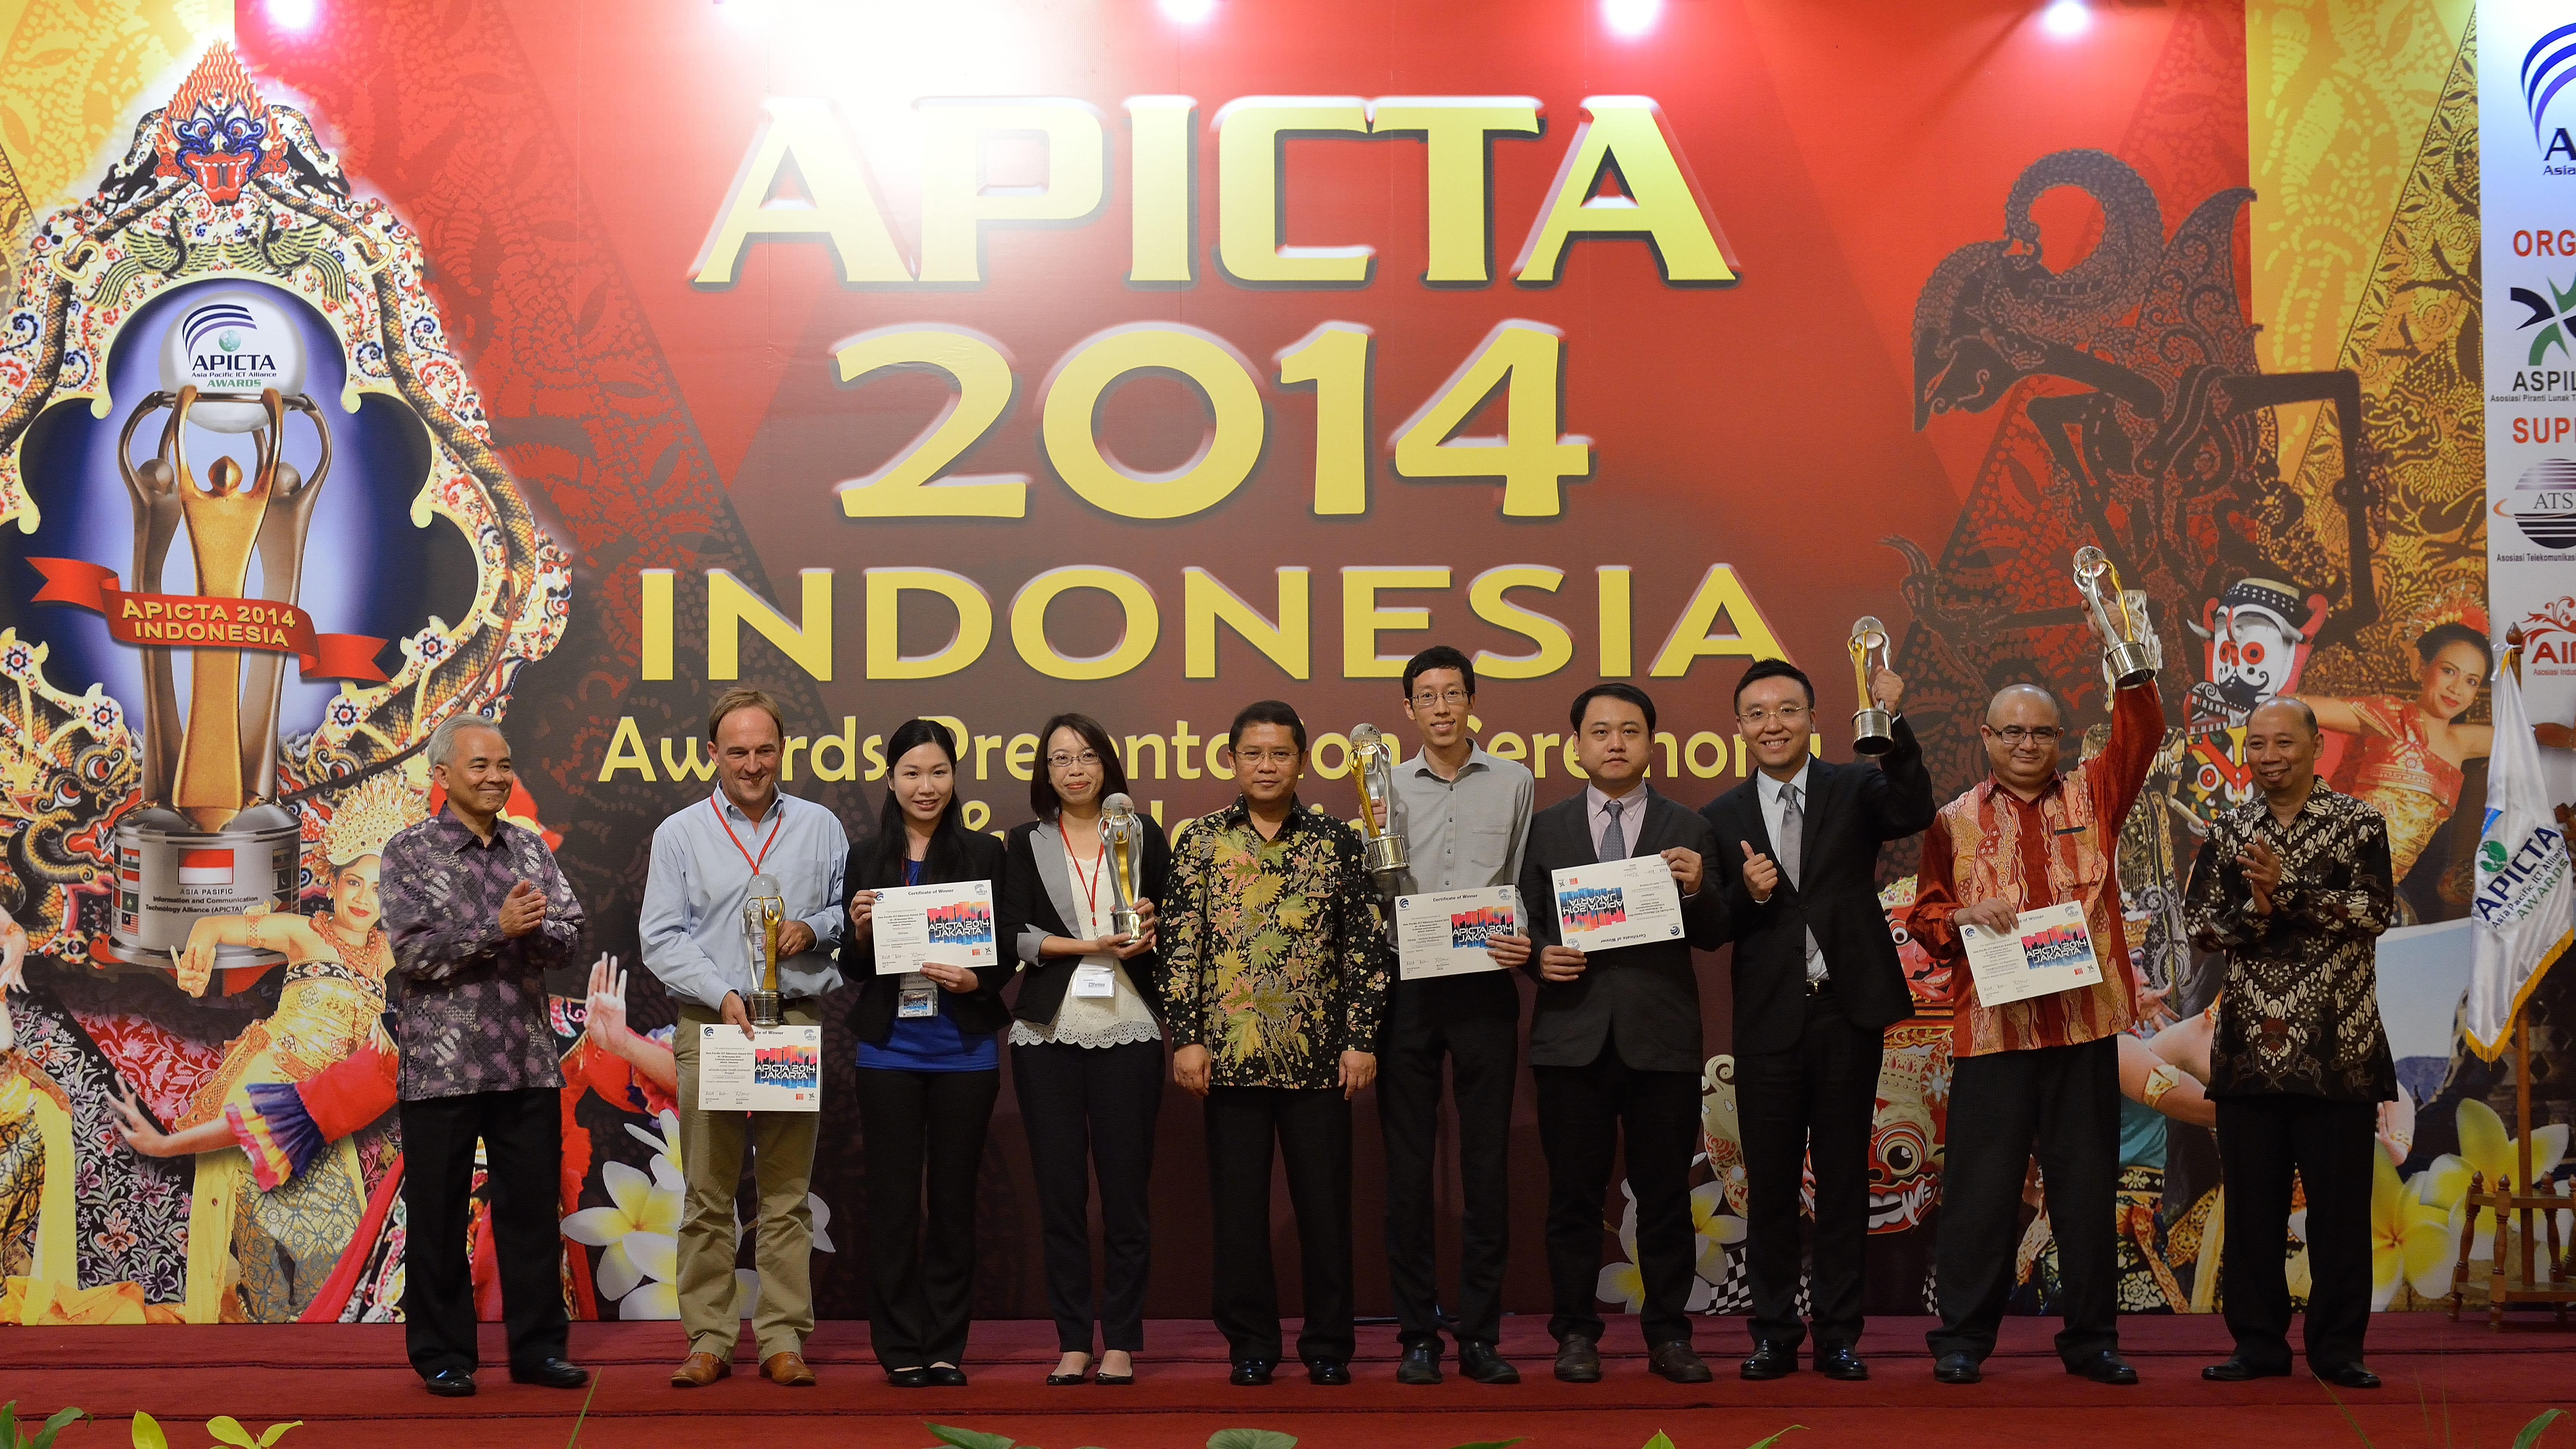 APICTA Awards@Indonesia